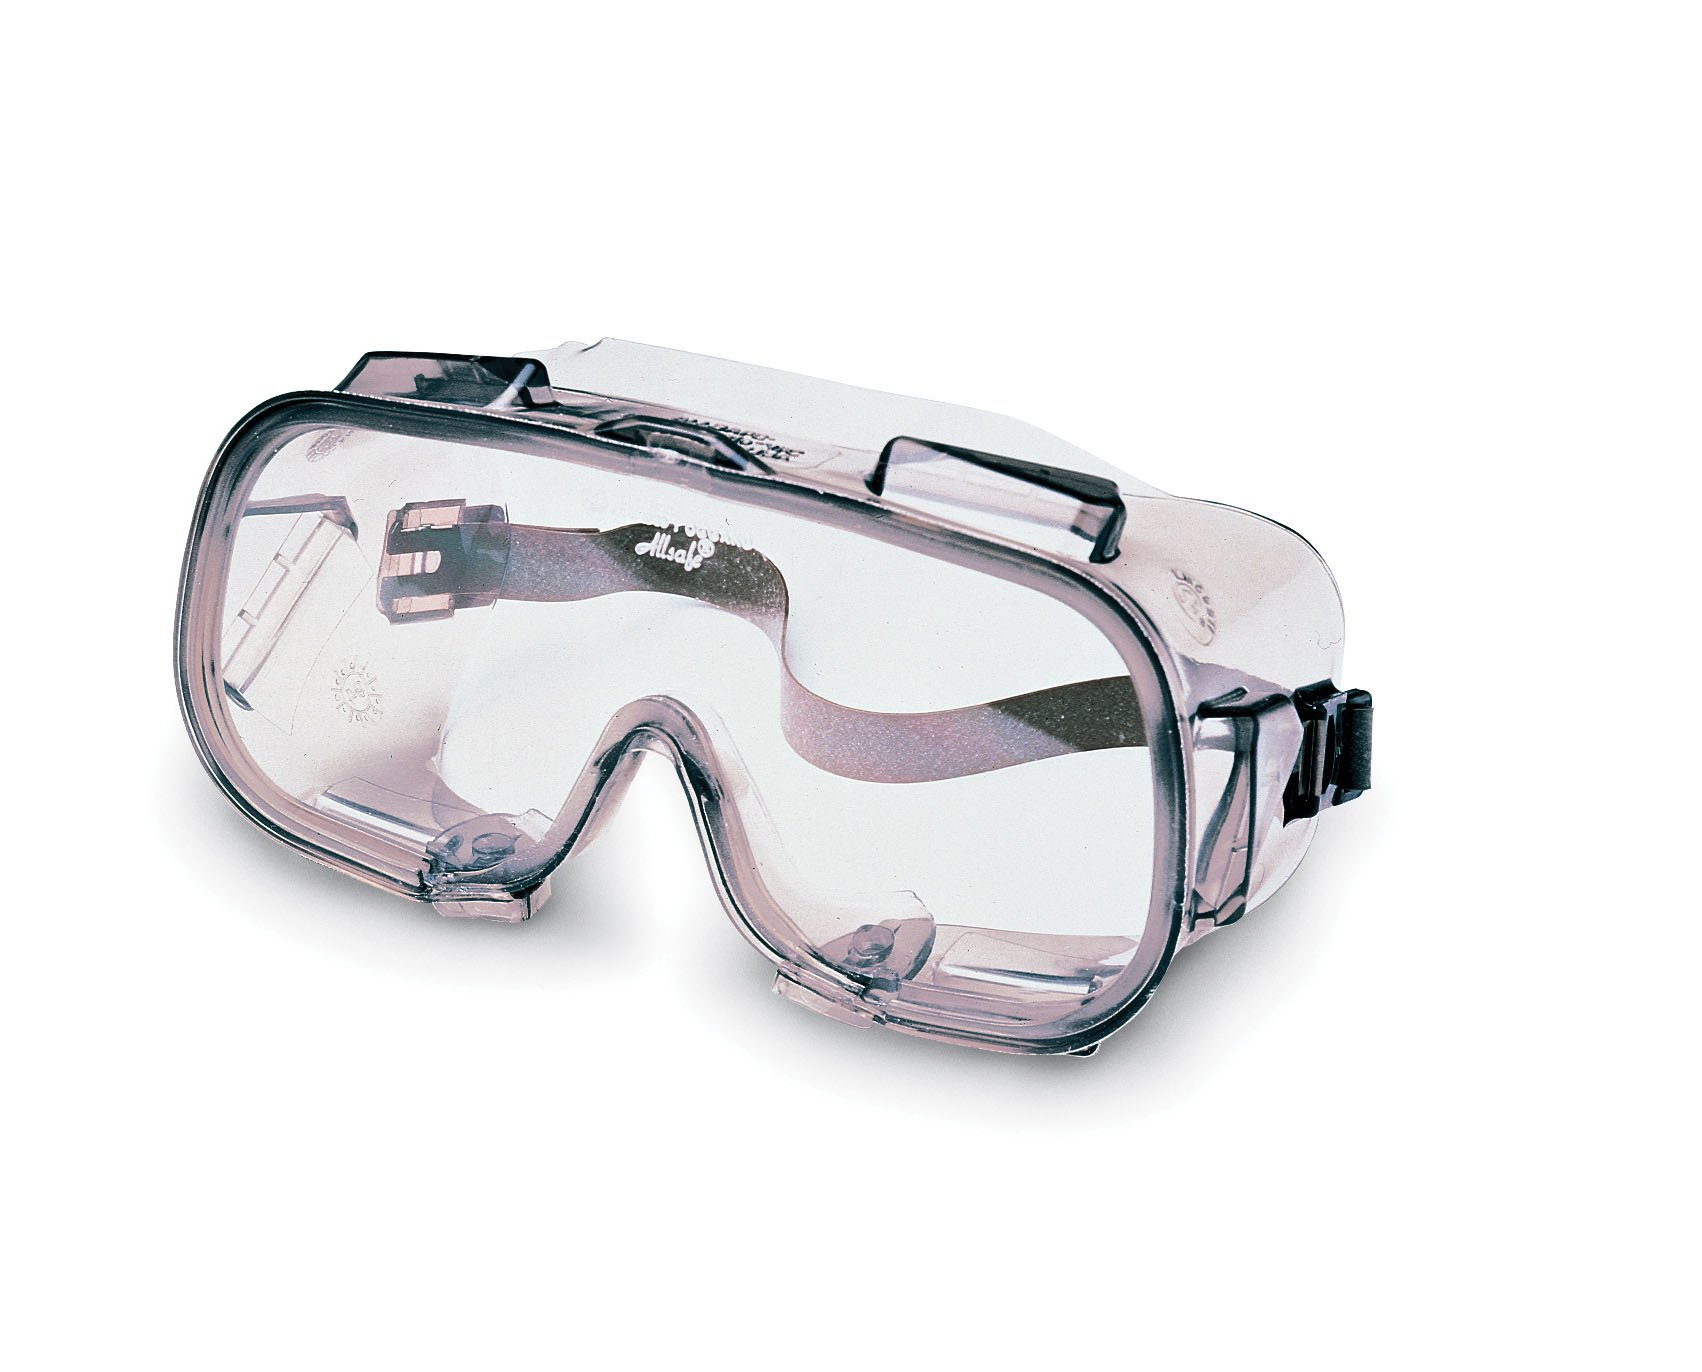 Jackson Safety 16361 V80 Monogoggle VPC Safety Goggles, Clear Anti-Fog Lens with Bronze Frame (Pack of 36) by Kimberly-Clark Professional